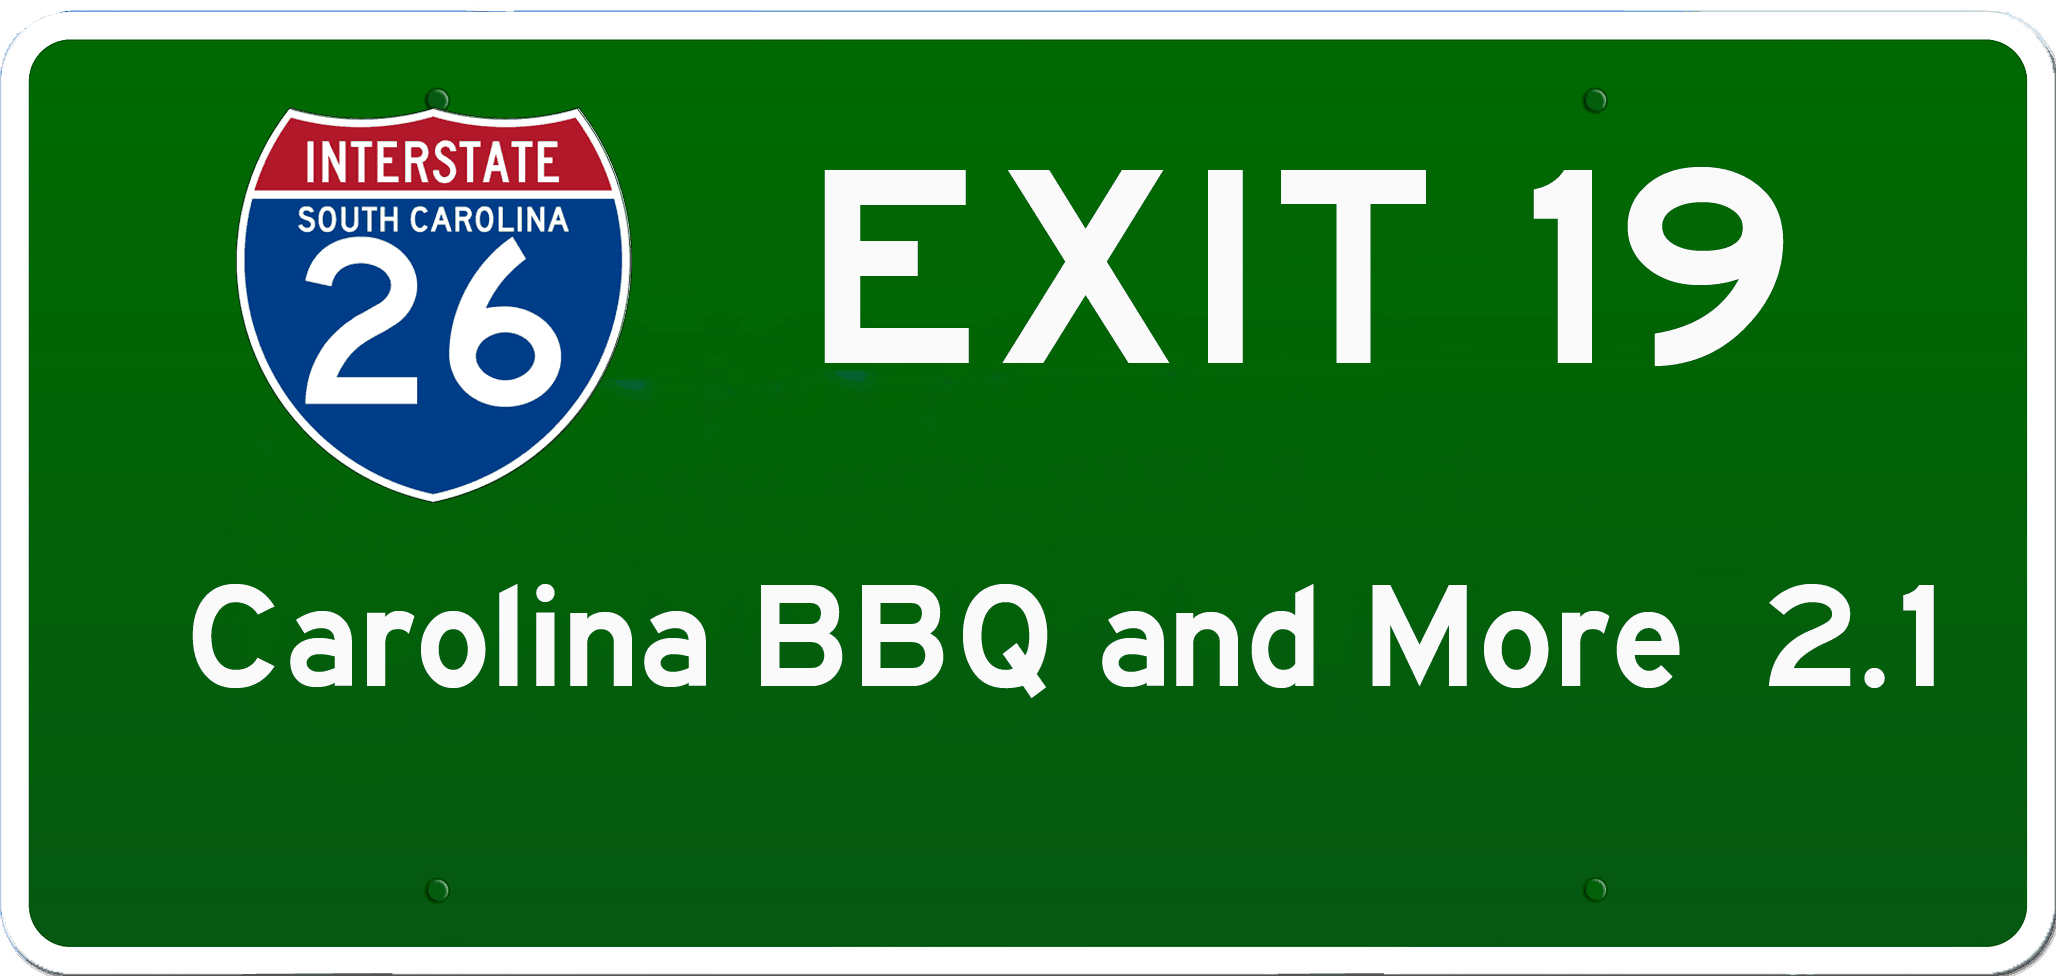 SC BBQ on I-26 at Exit 19